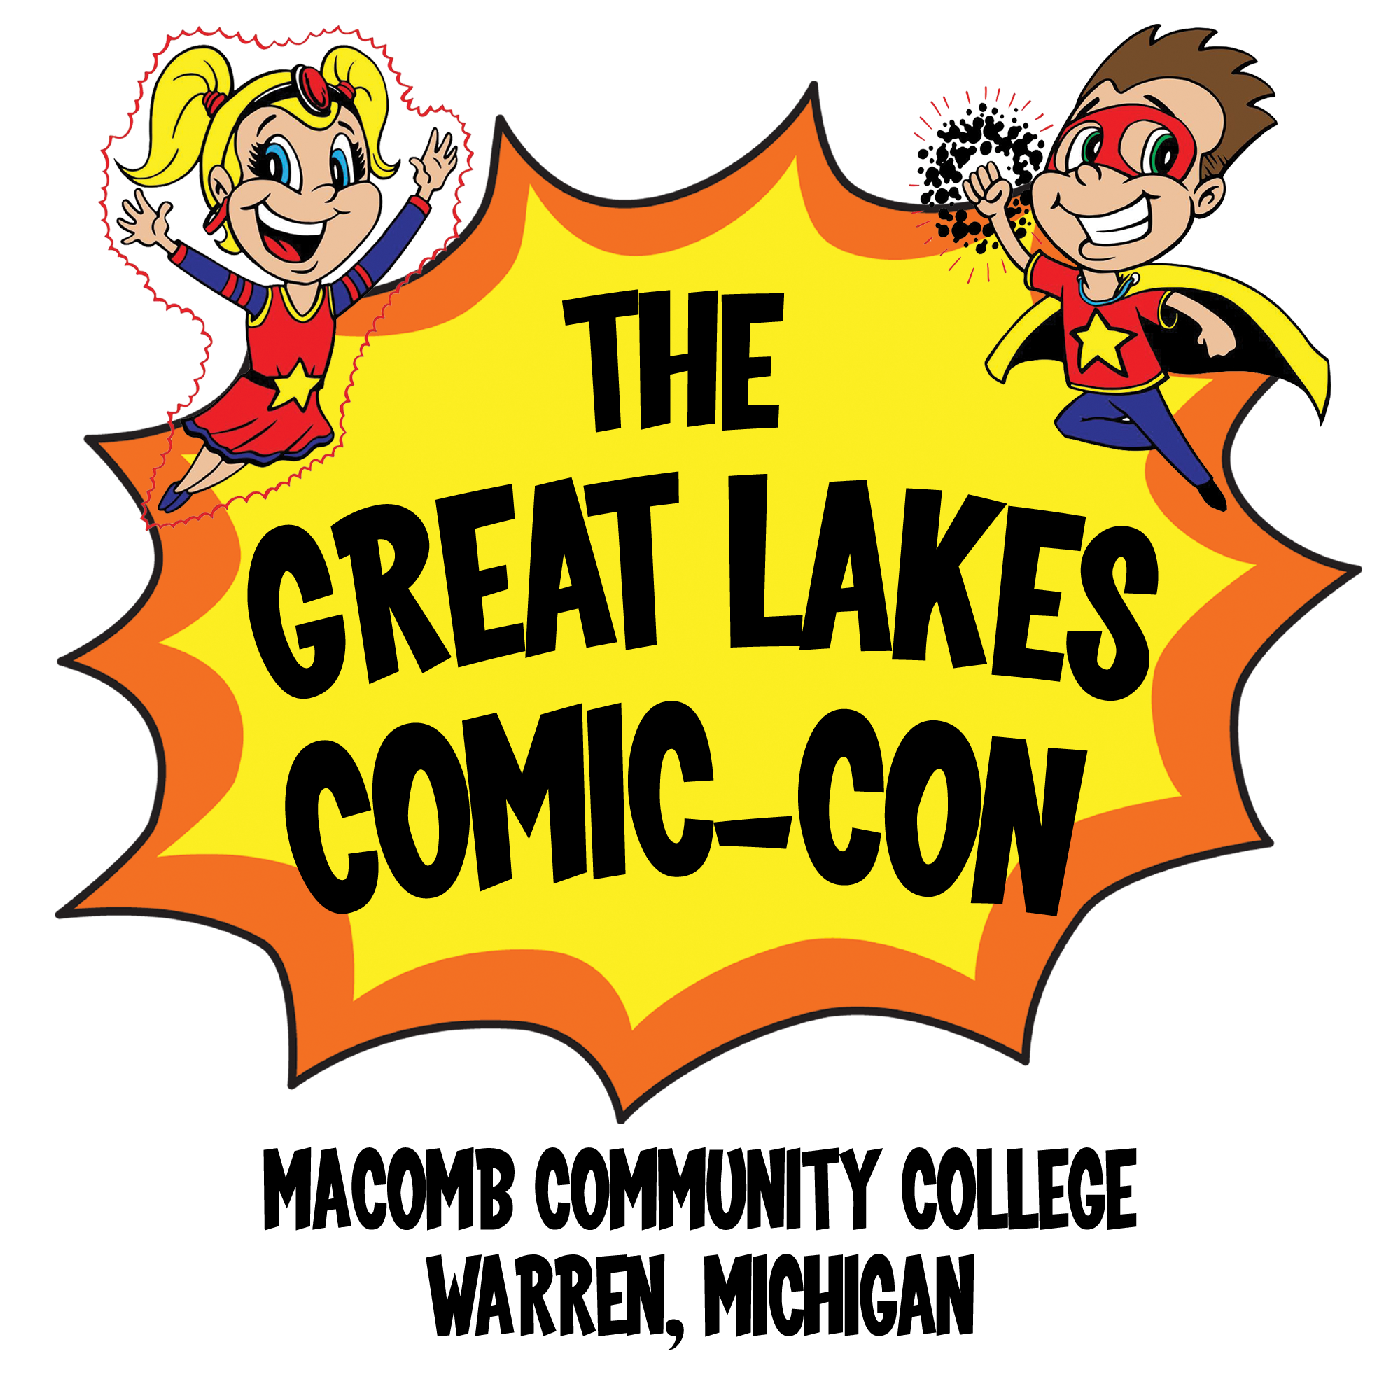 Free tiff comic book clipart svg royalty free library Sponsorship - The Great Lakes Comic-Con svg royalty free library